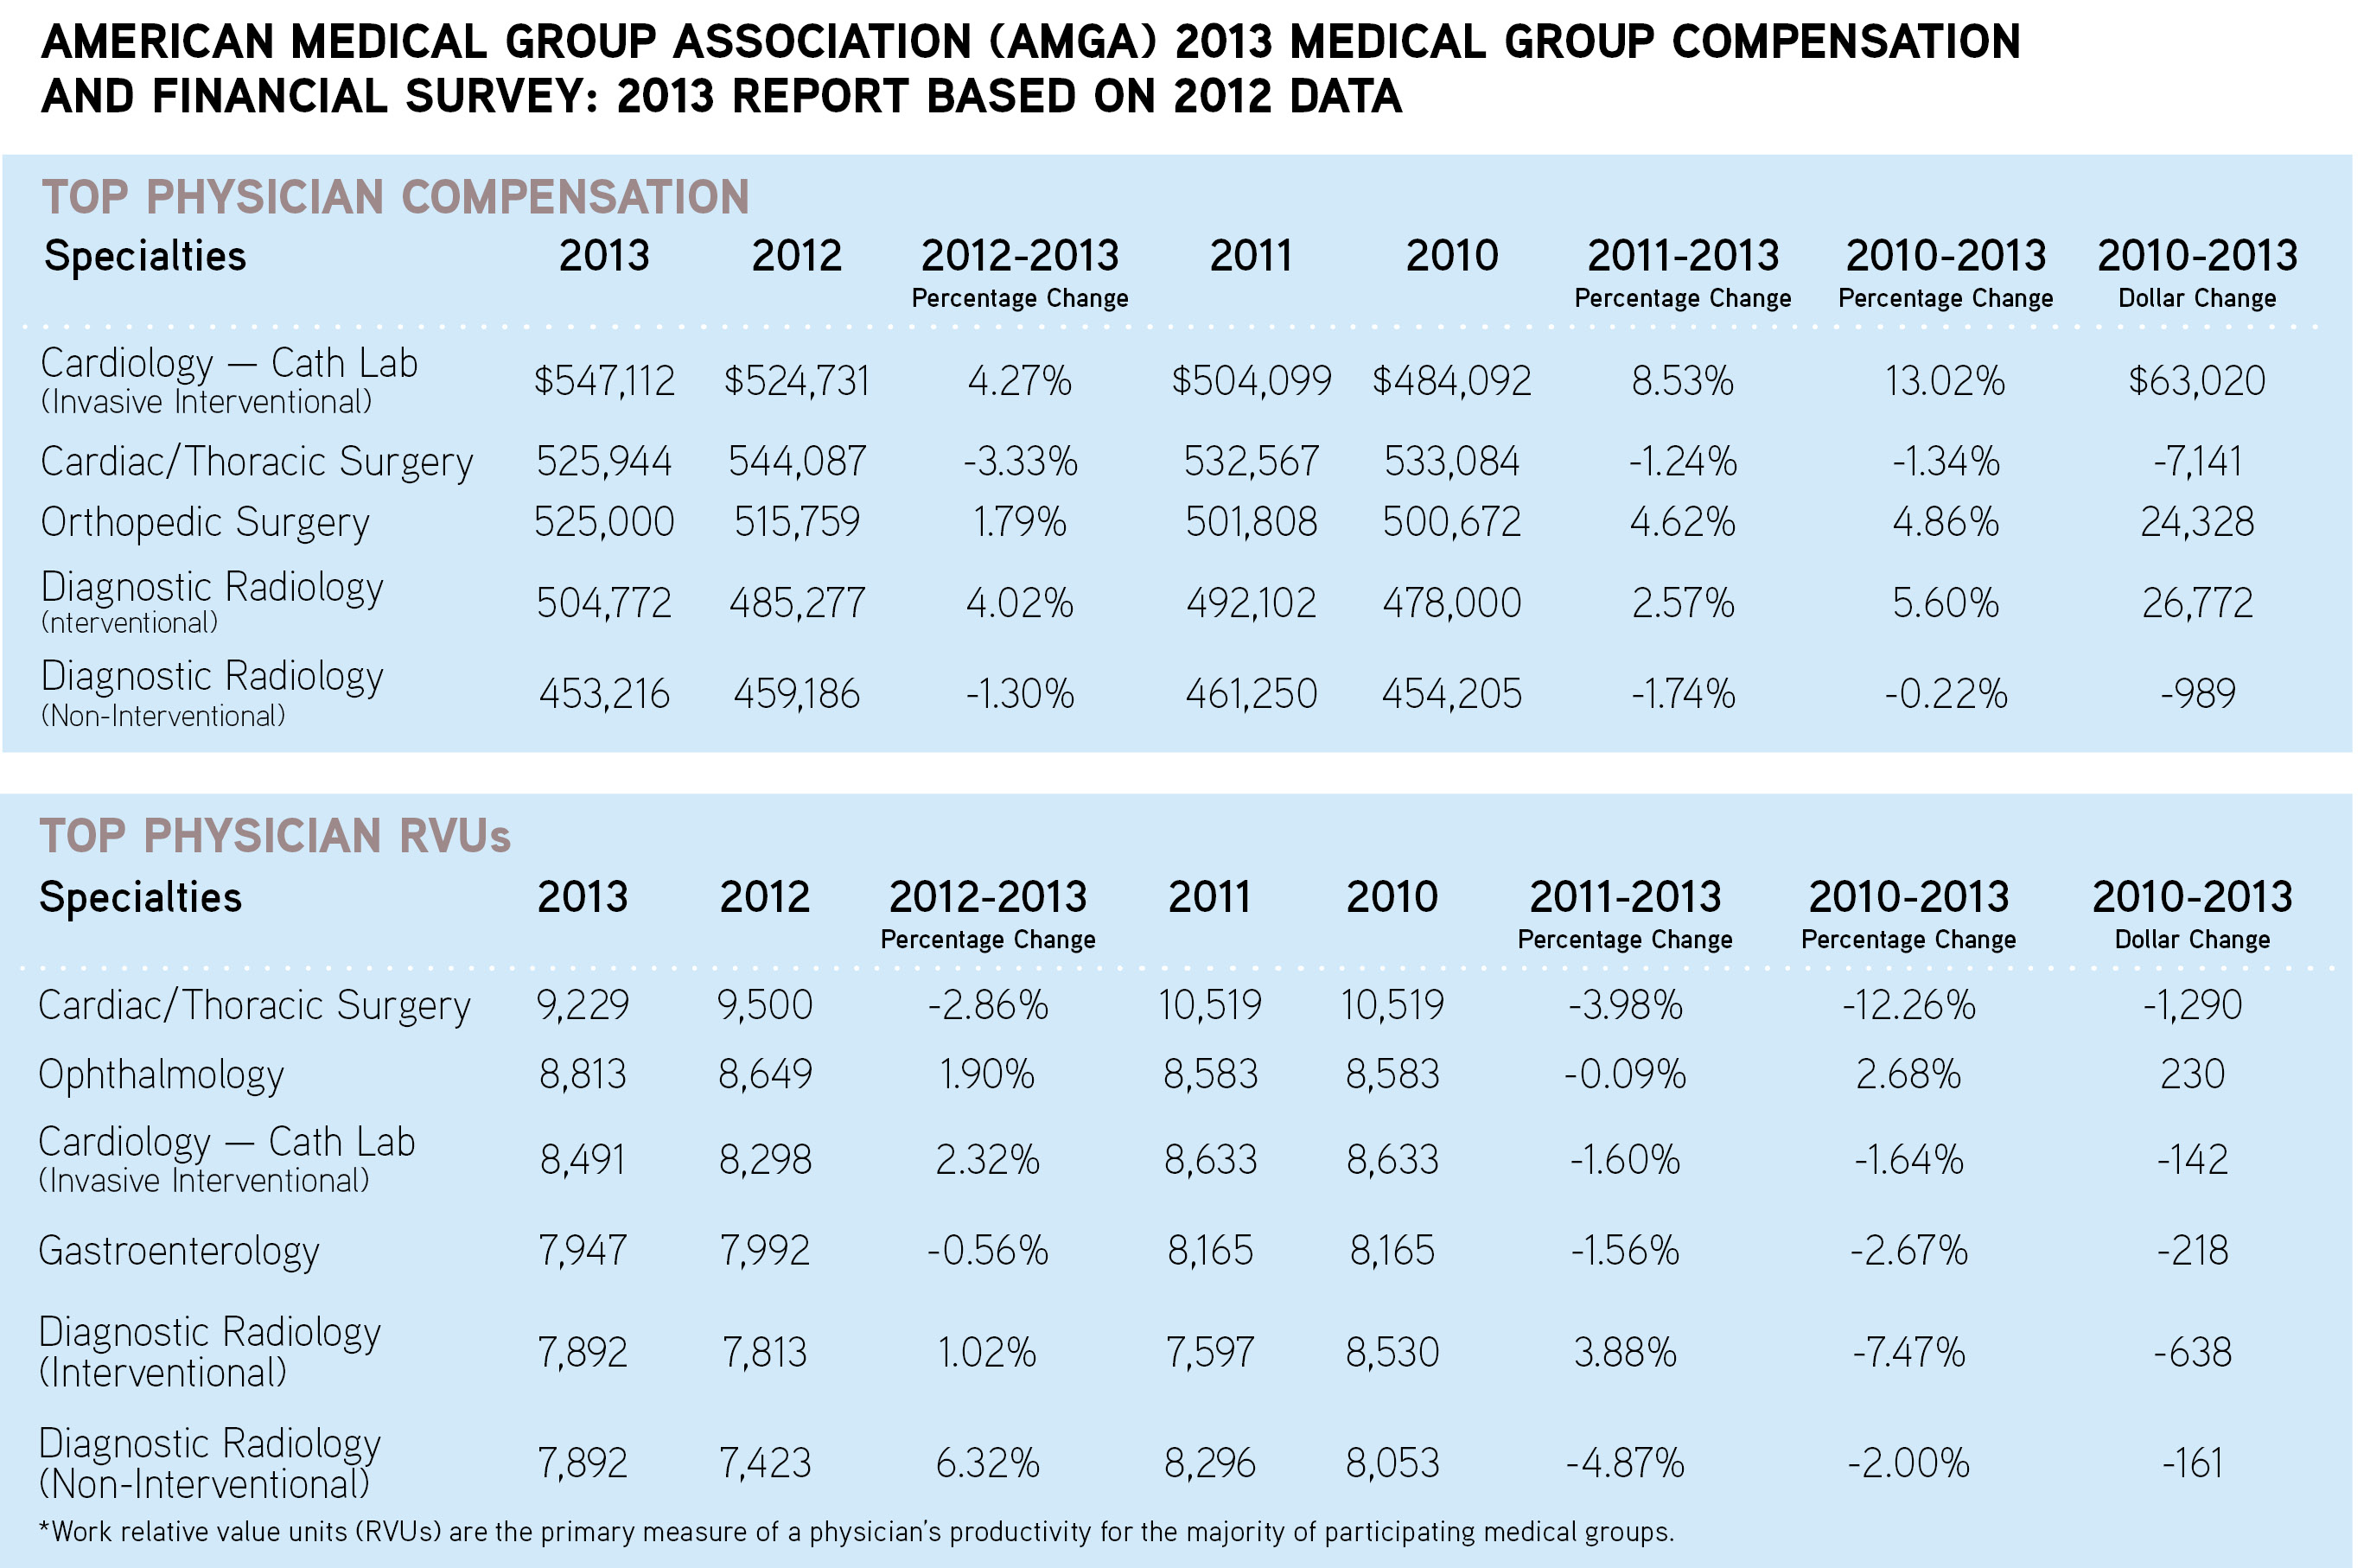 American Medical Group Association (AMGA) 2013 Medical Group Compensation and Financial Survey